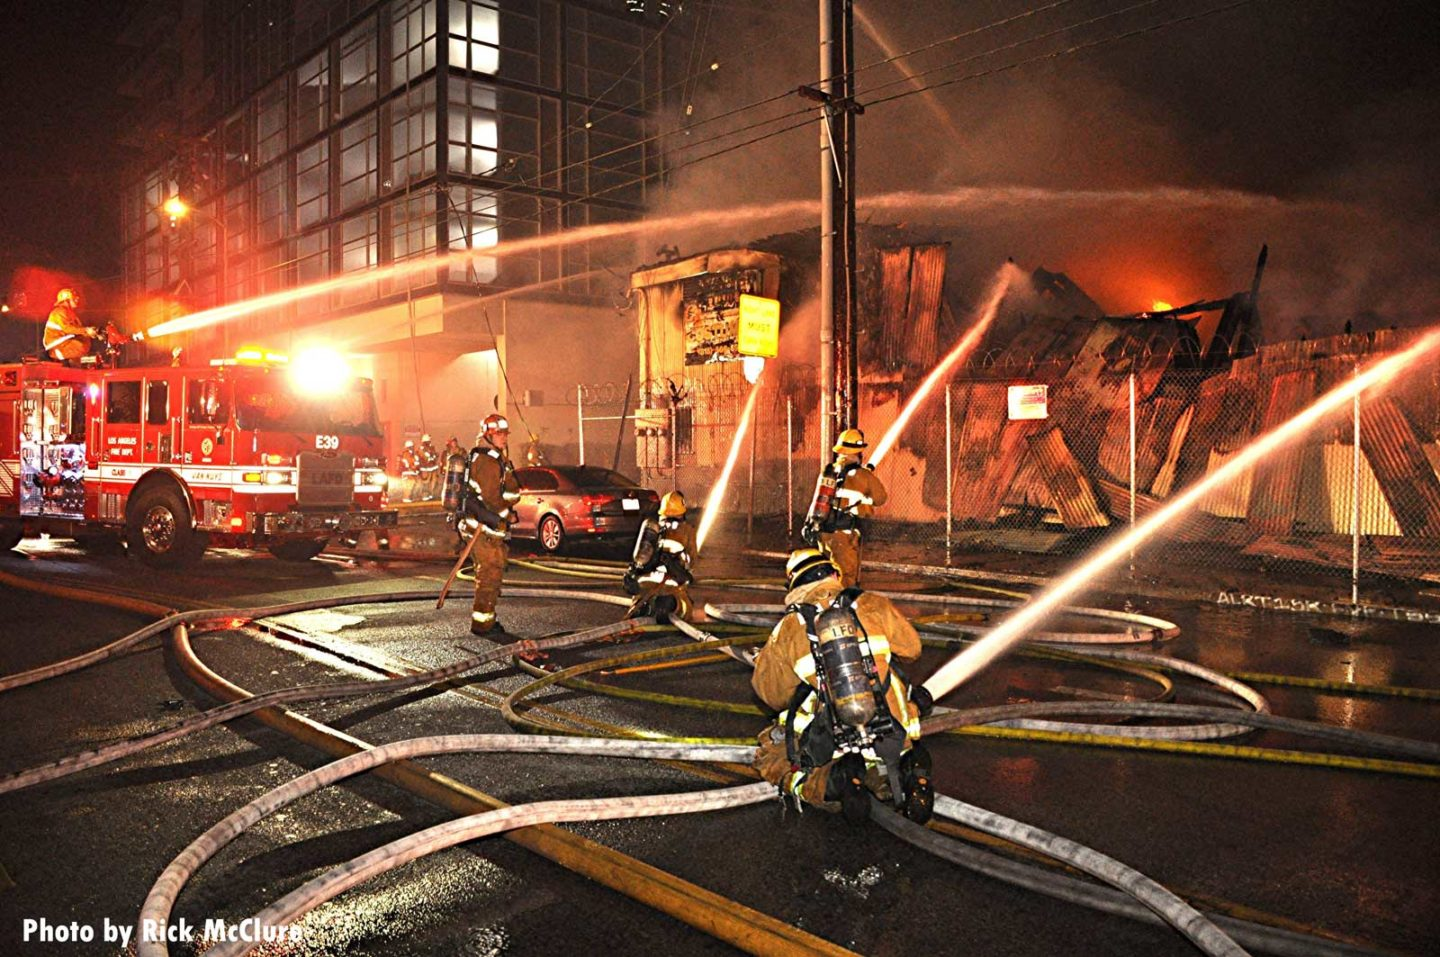 Firefighters with multiple hoses place water on the fire in Los Angeles